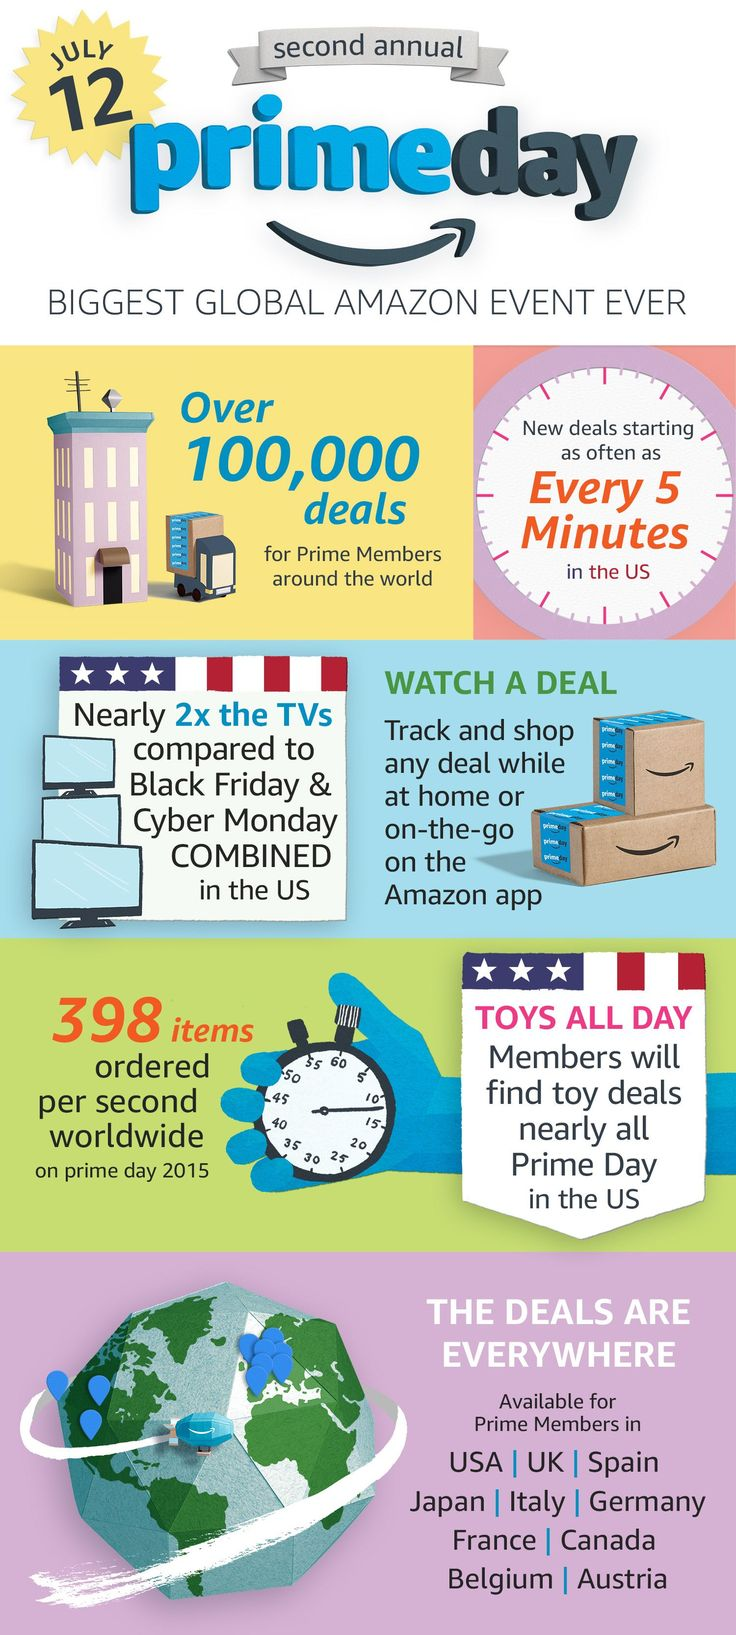 Is Amazon Prime Day worth it? Are there deals to be had? Tips and tricks for getting good deals on Amazon Prime Day on July 12, 2016.